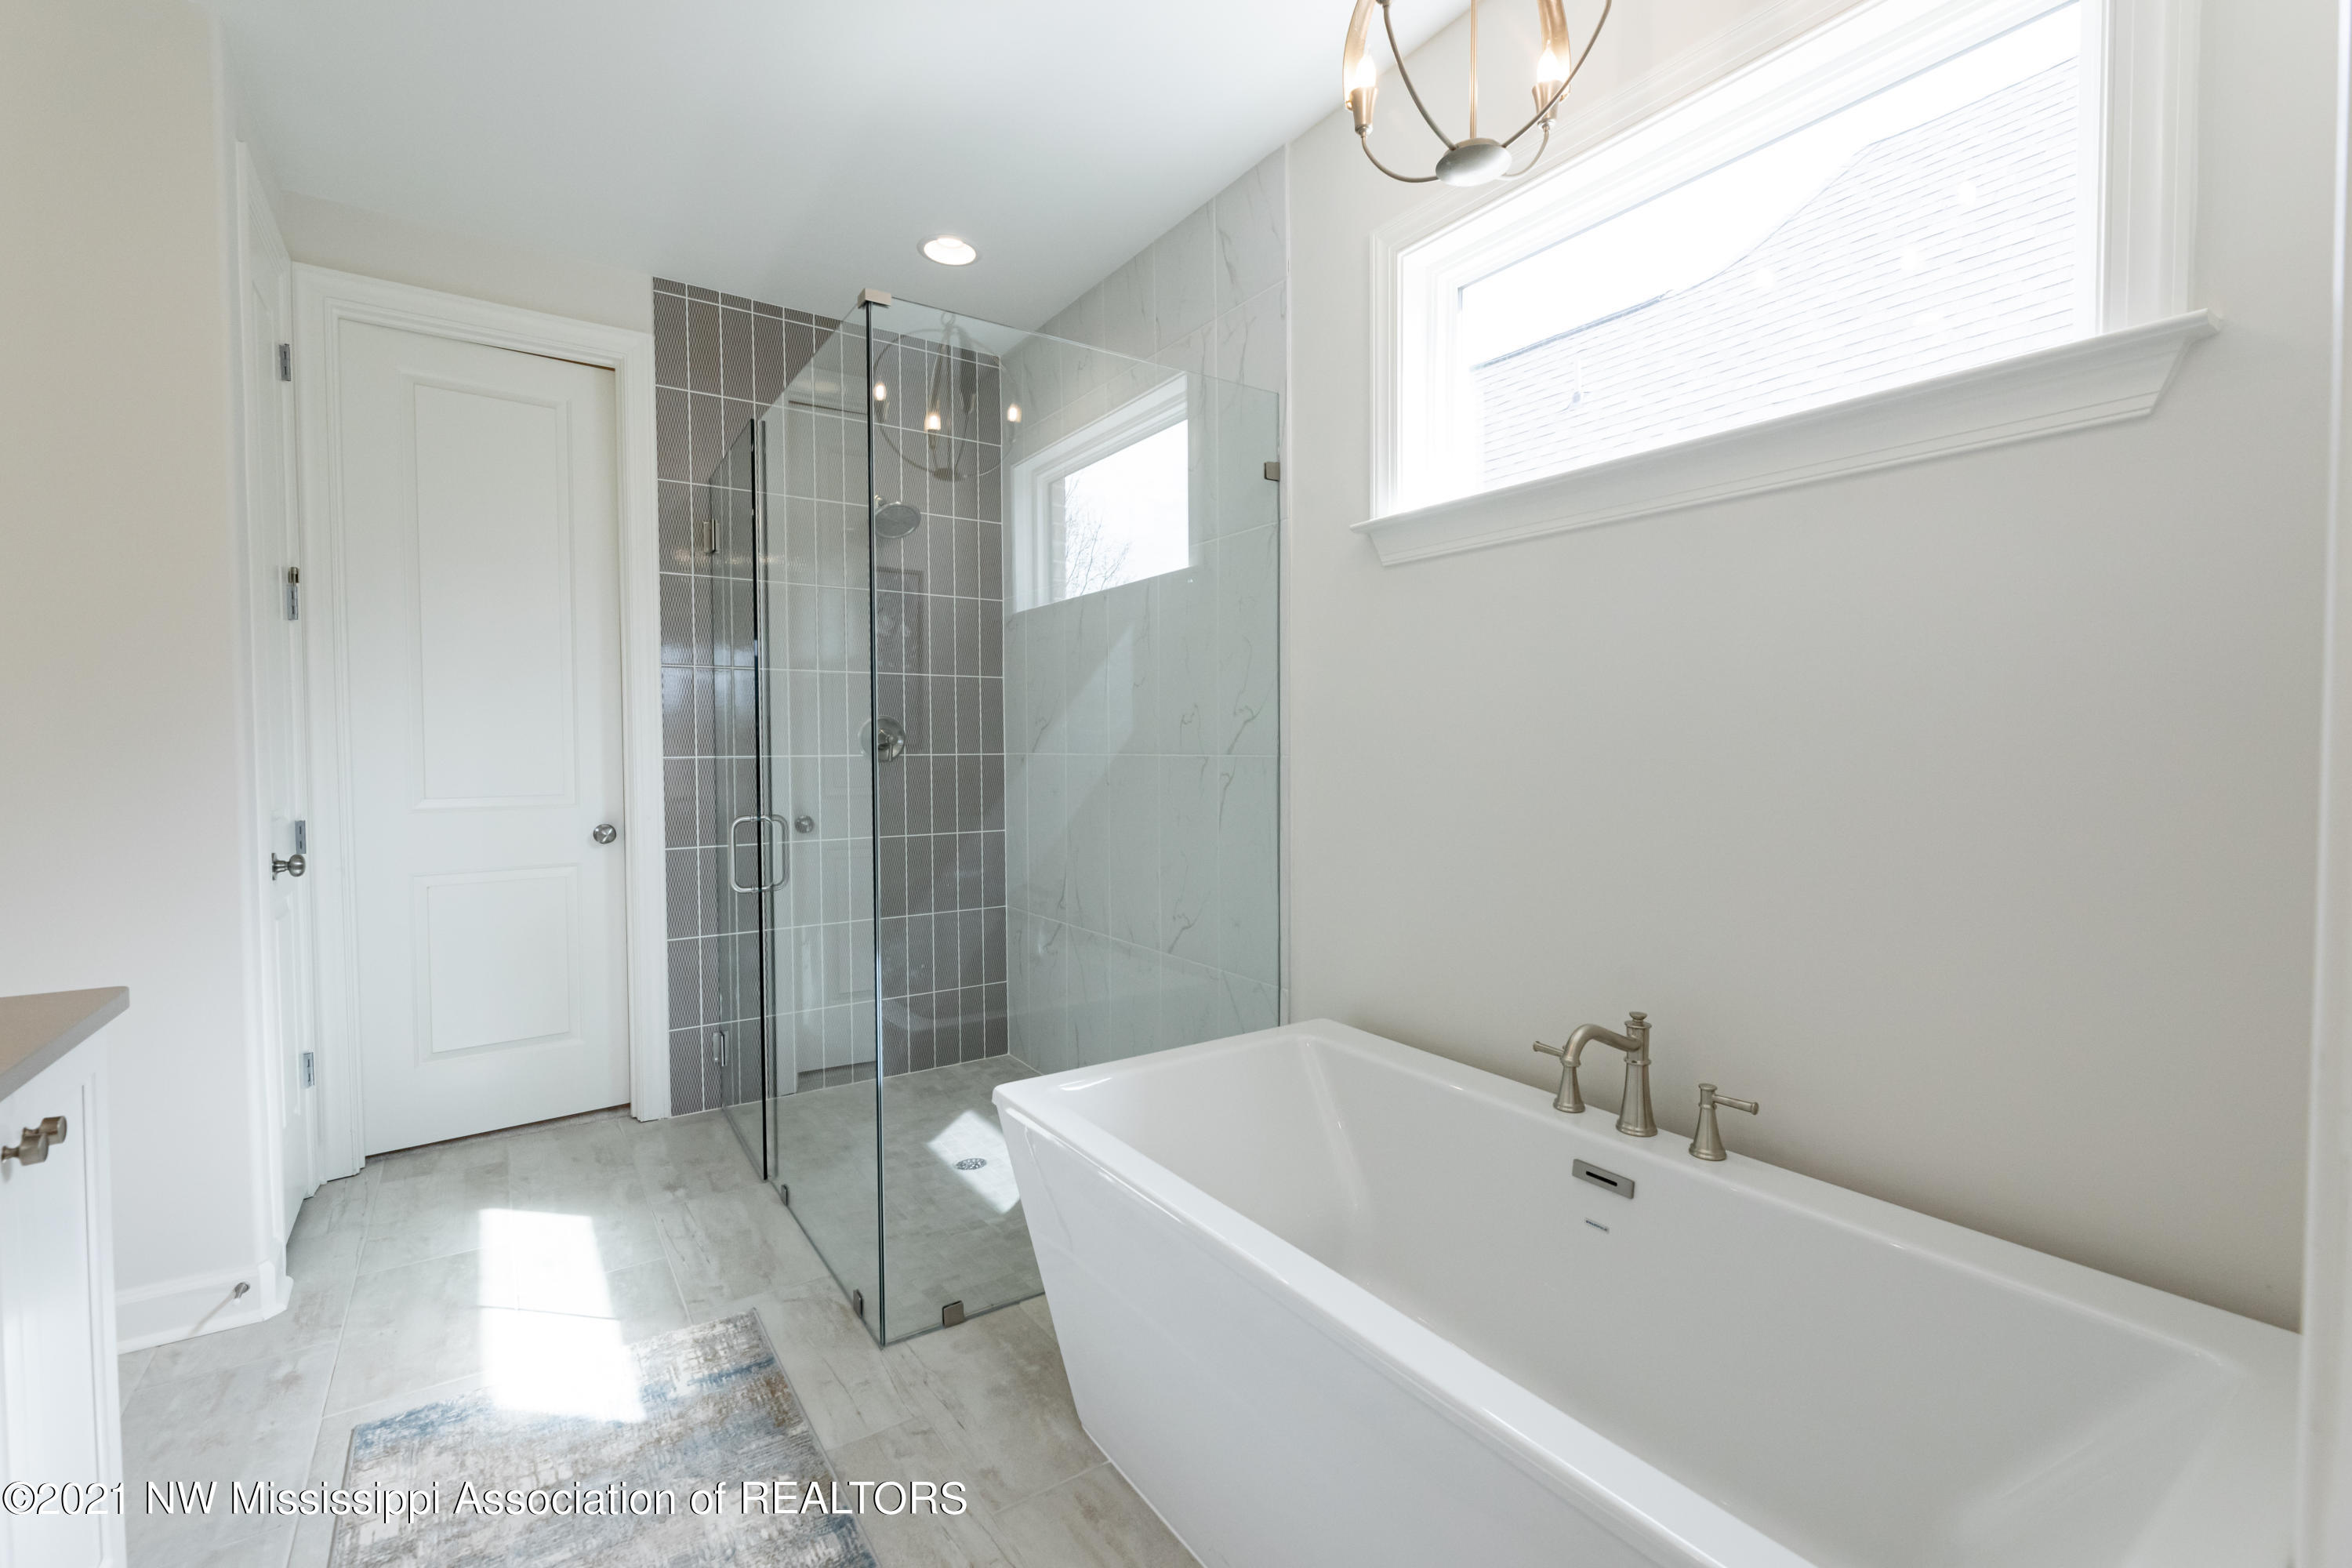 Primary Tub and Shower